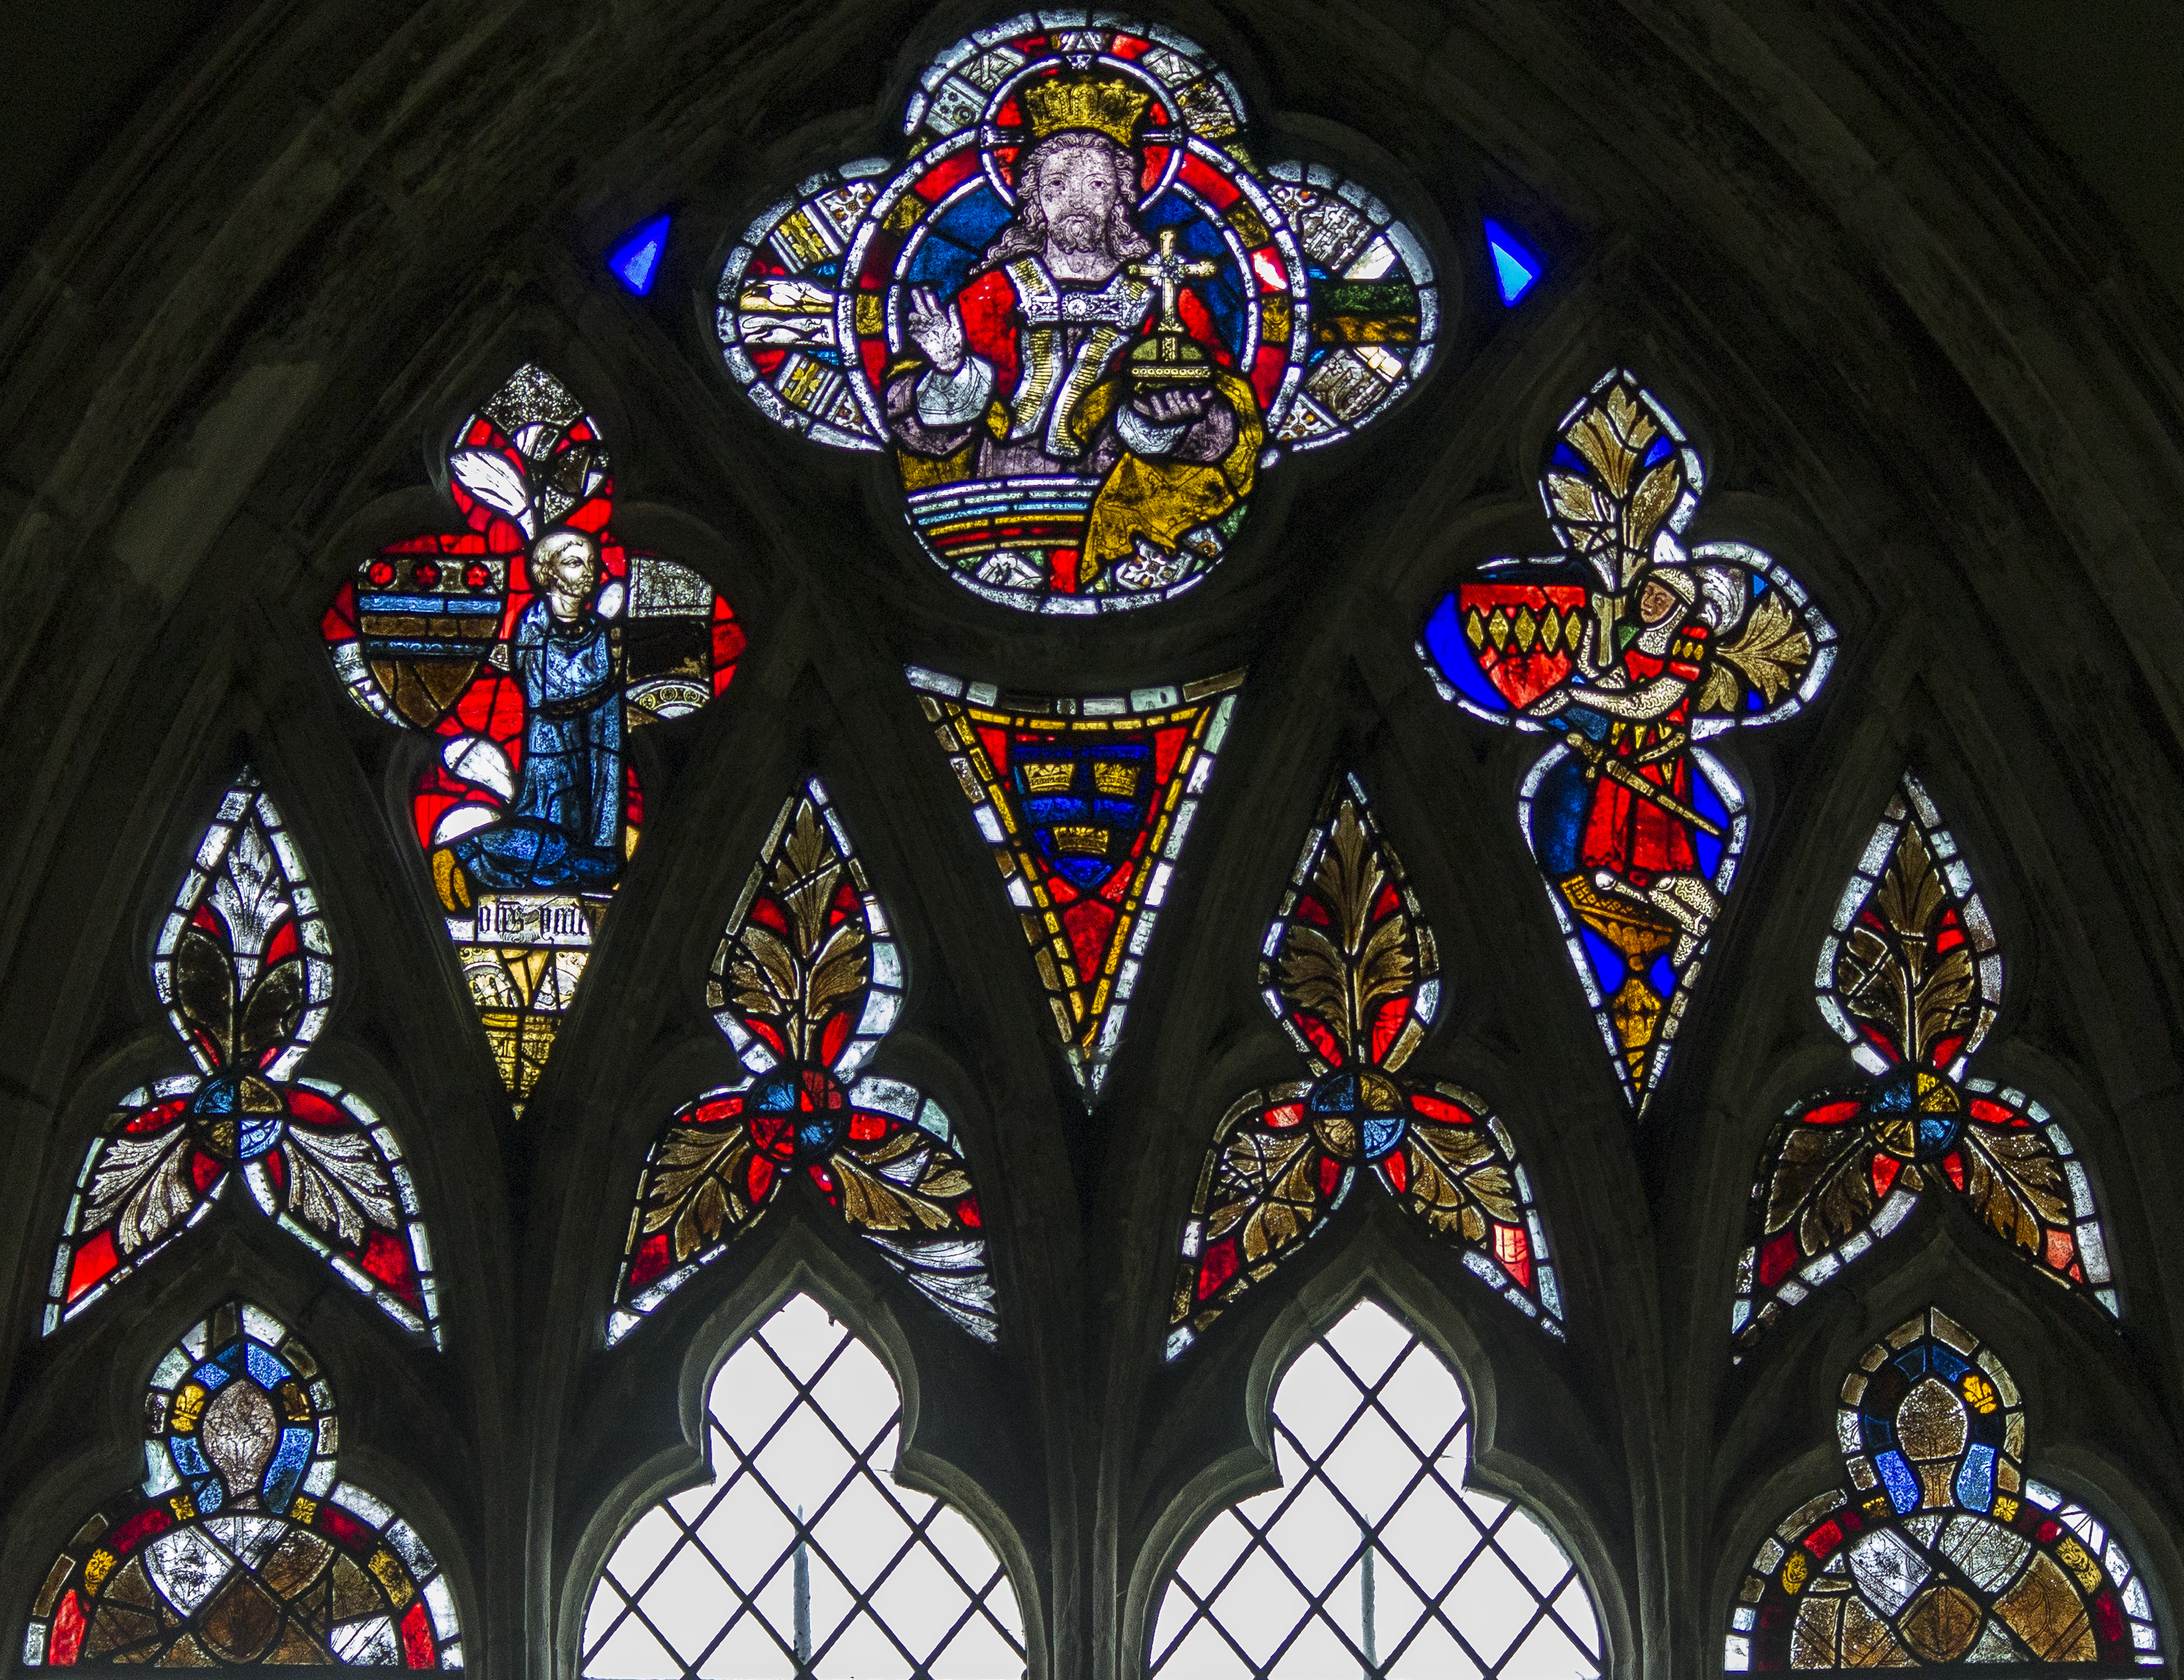 The Newmarch Window at Carlton-Scroop church in north Lincolnshire. The figure dressed as a knight on the right was Sir John de Newmarch in about 1307. Photo courtesy of J. Hannan-Briggs. Click or tap the picture to enlarge it.